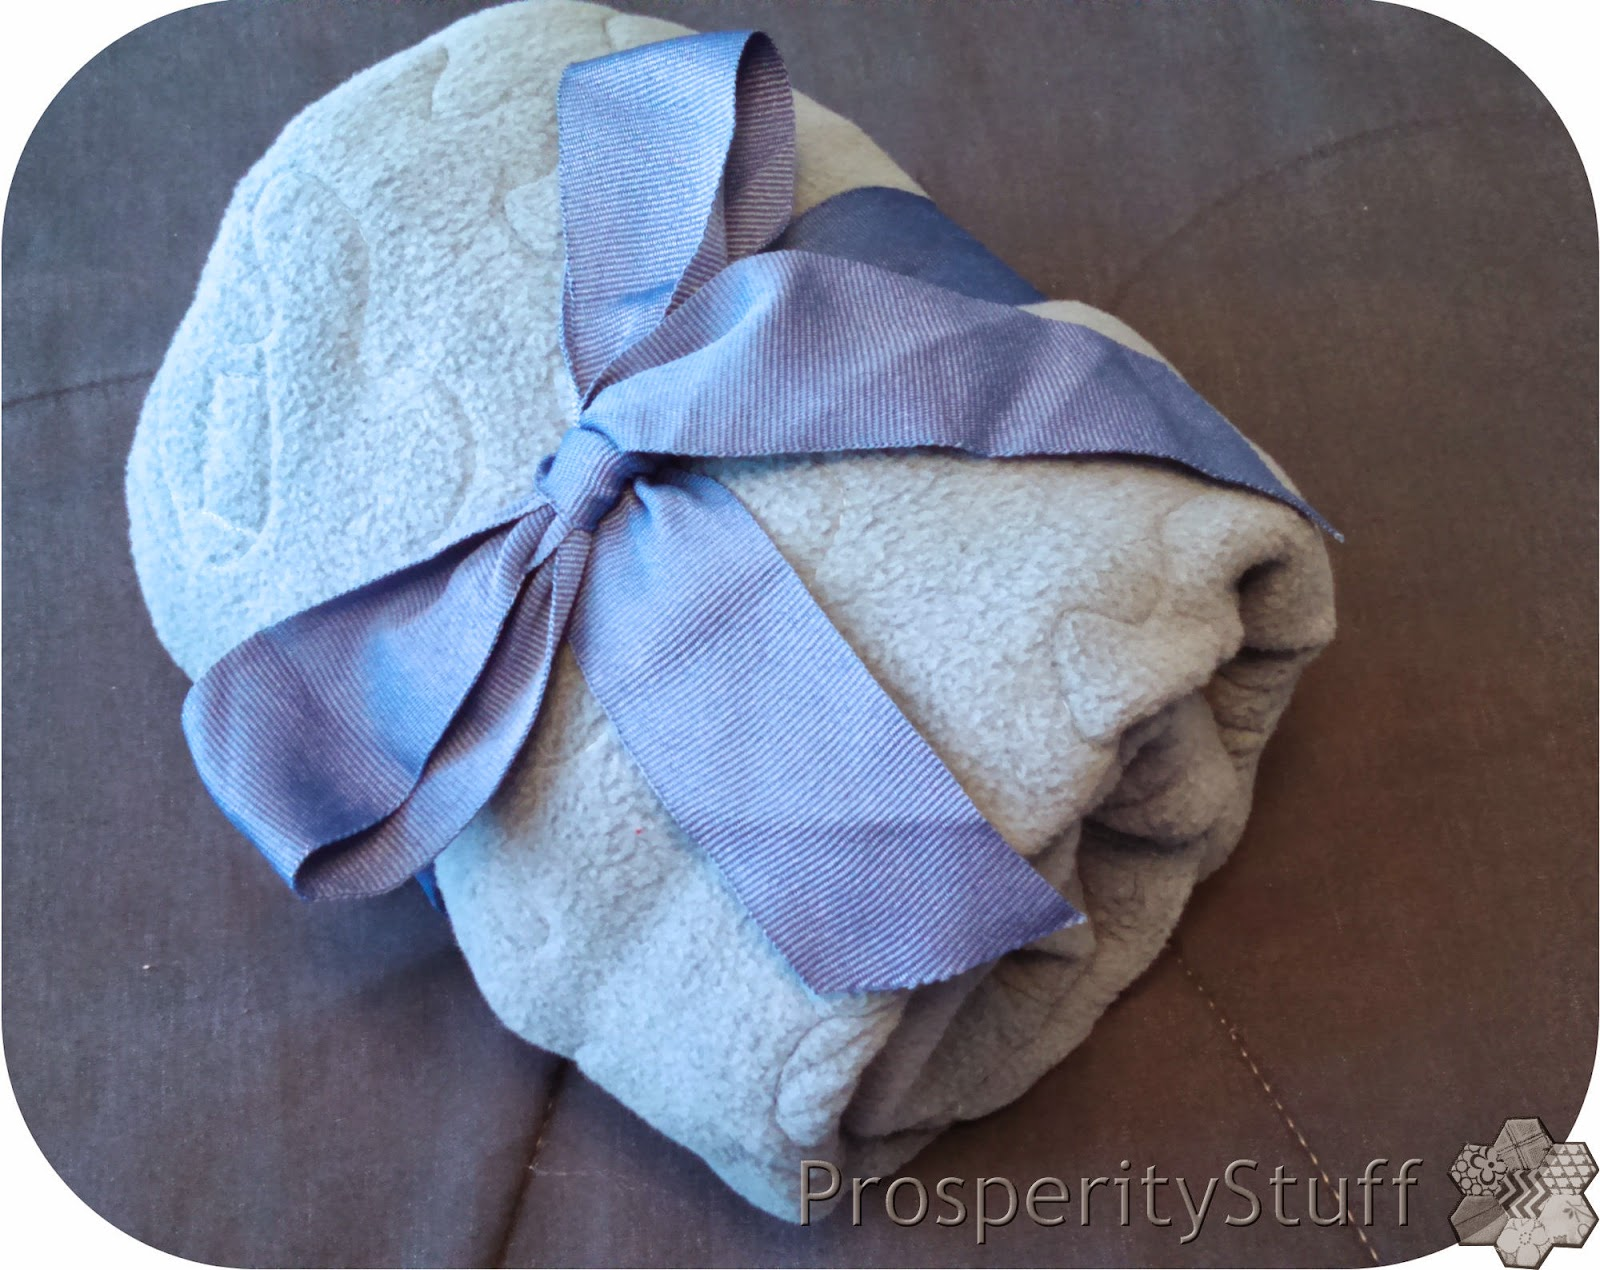 ProsperityStuff Quilts: Fleece and T-Shirt baby quilt wrapped in ribbon